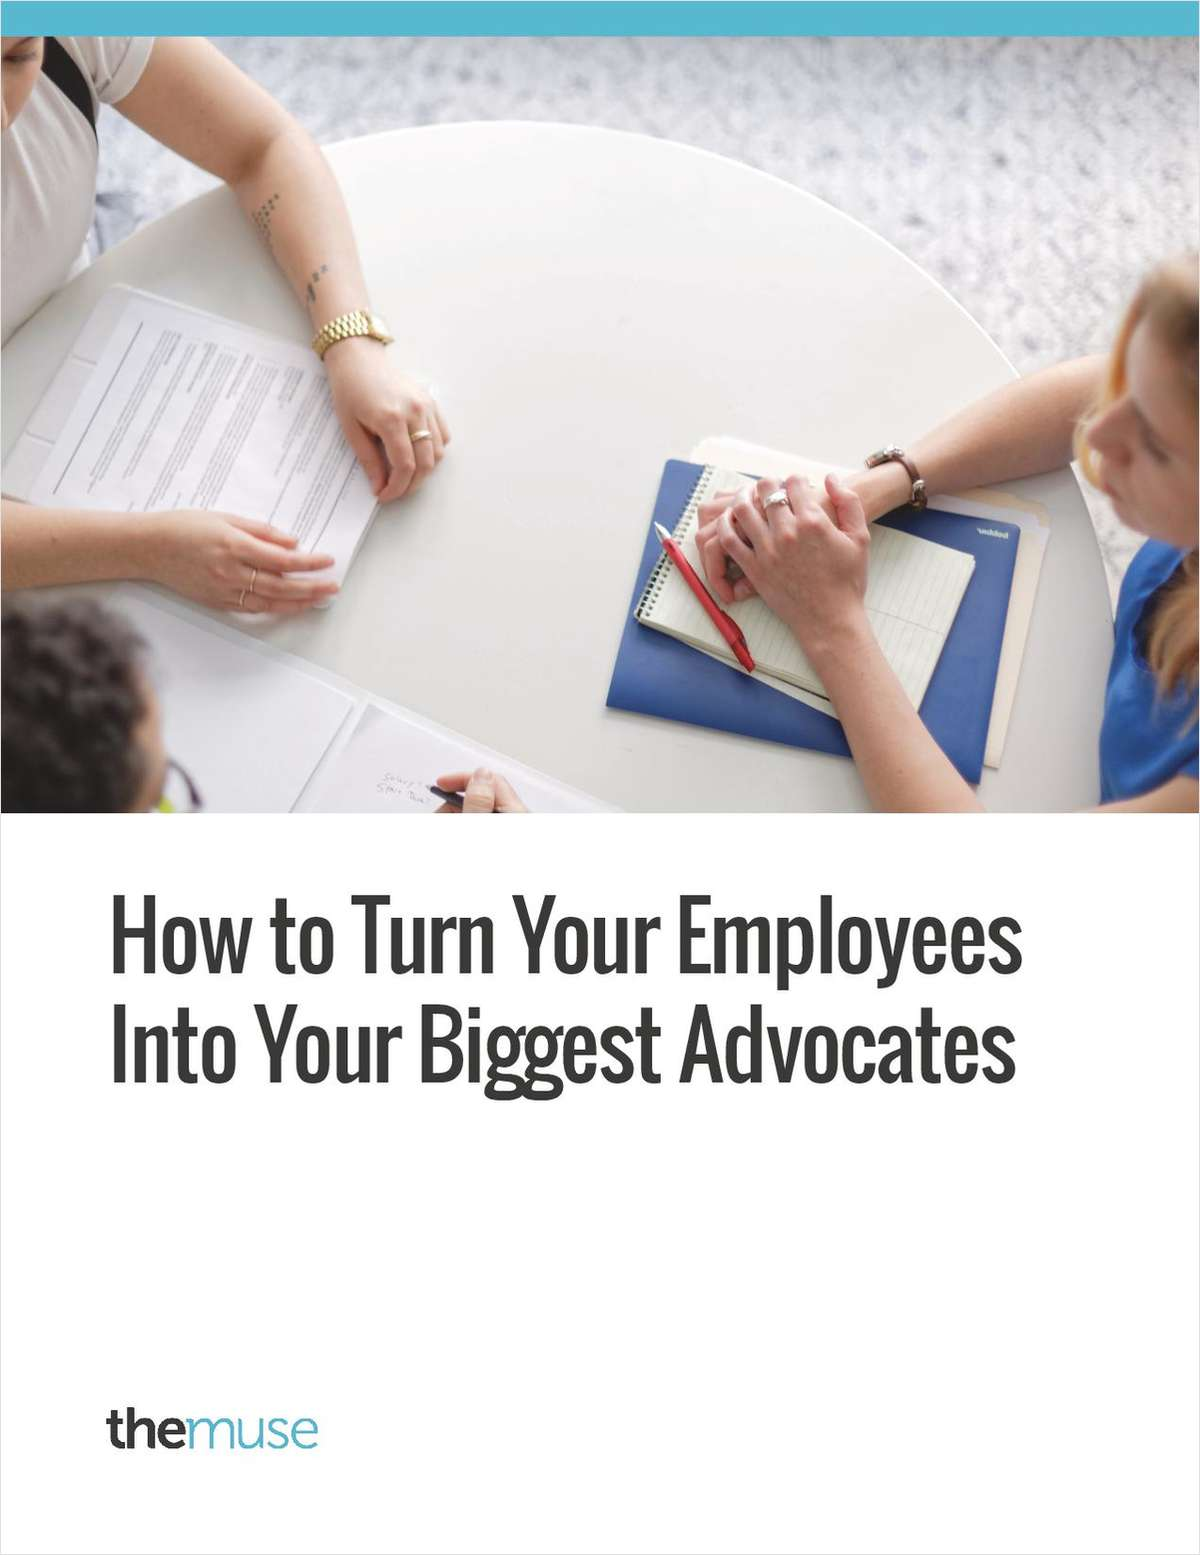 How to Turn Your Employees Into Your Biggest Advocates